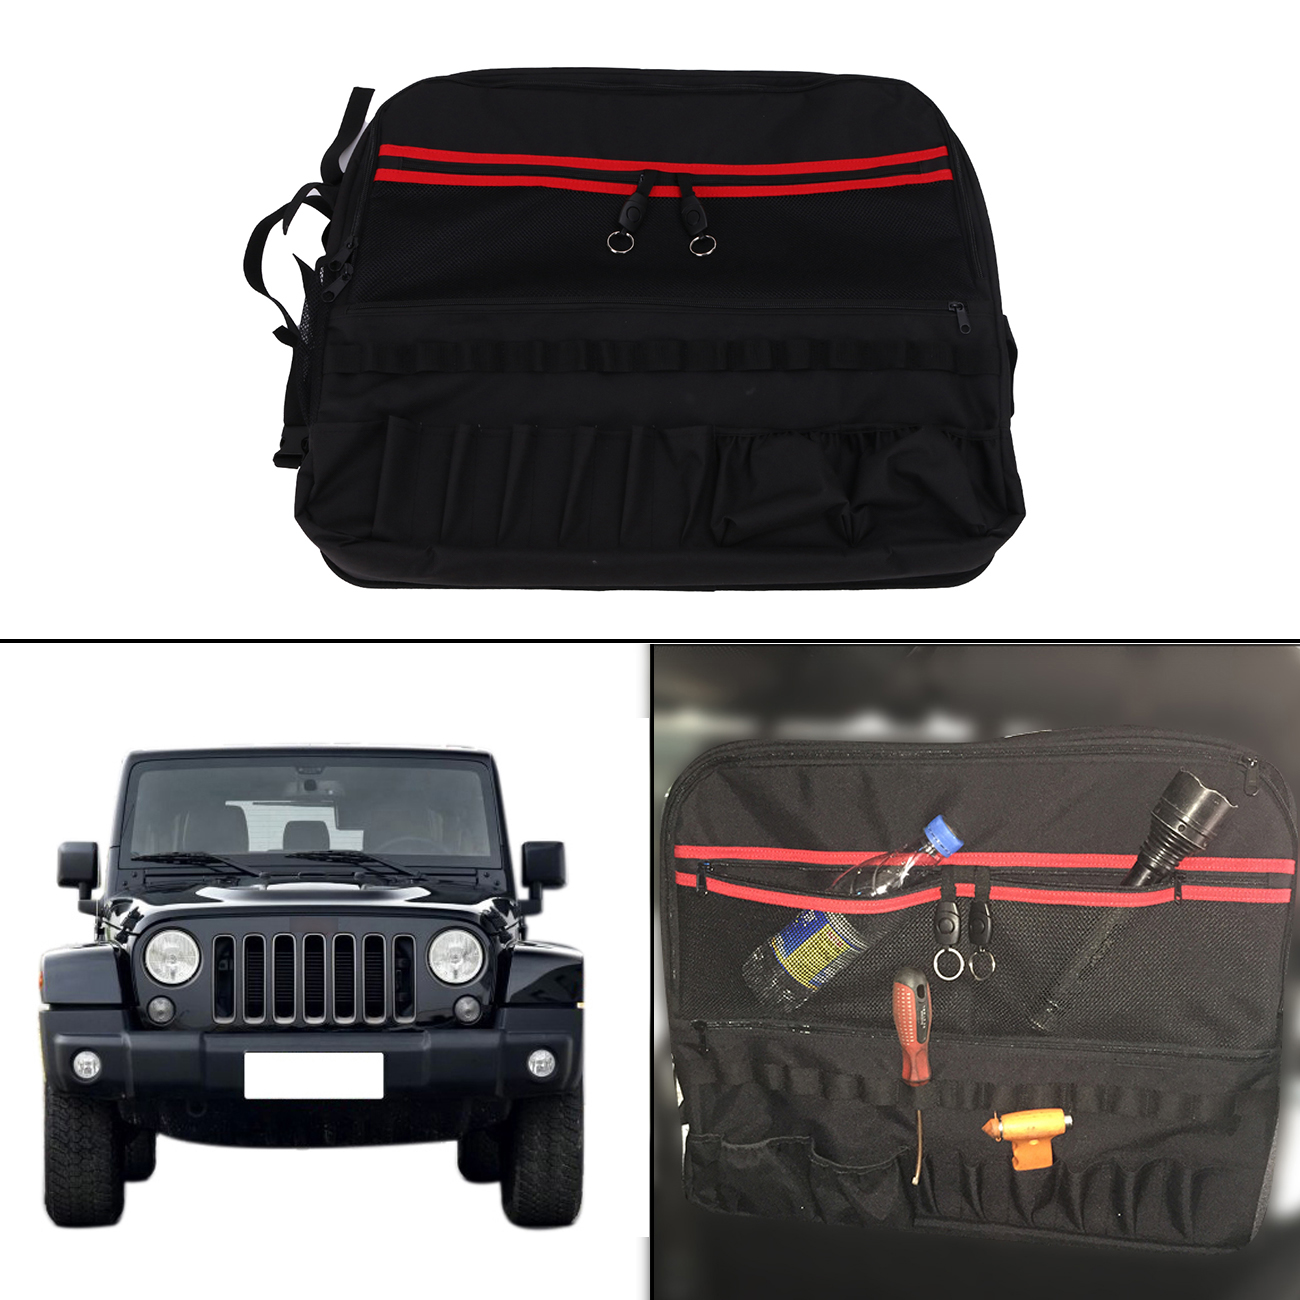 Left Side Roll Bar Storage Bag Luggage For Jeep Wrangler JK 2 Door 2007-2017 Car Tool Kits Bottle Drink Phone Holder #CE059-L 2 pcs black car styling parts front rear grab bar handles for jeep wrangler jk 2007 2017 new fashion upgraded